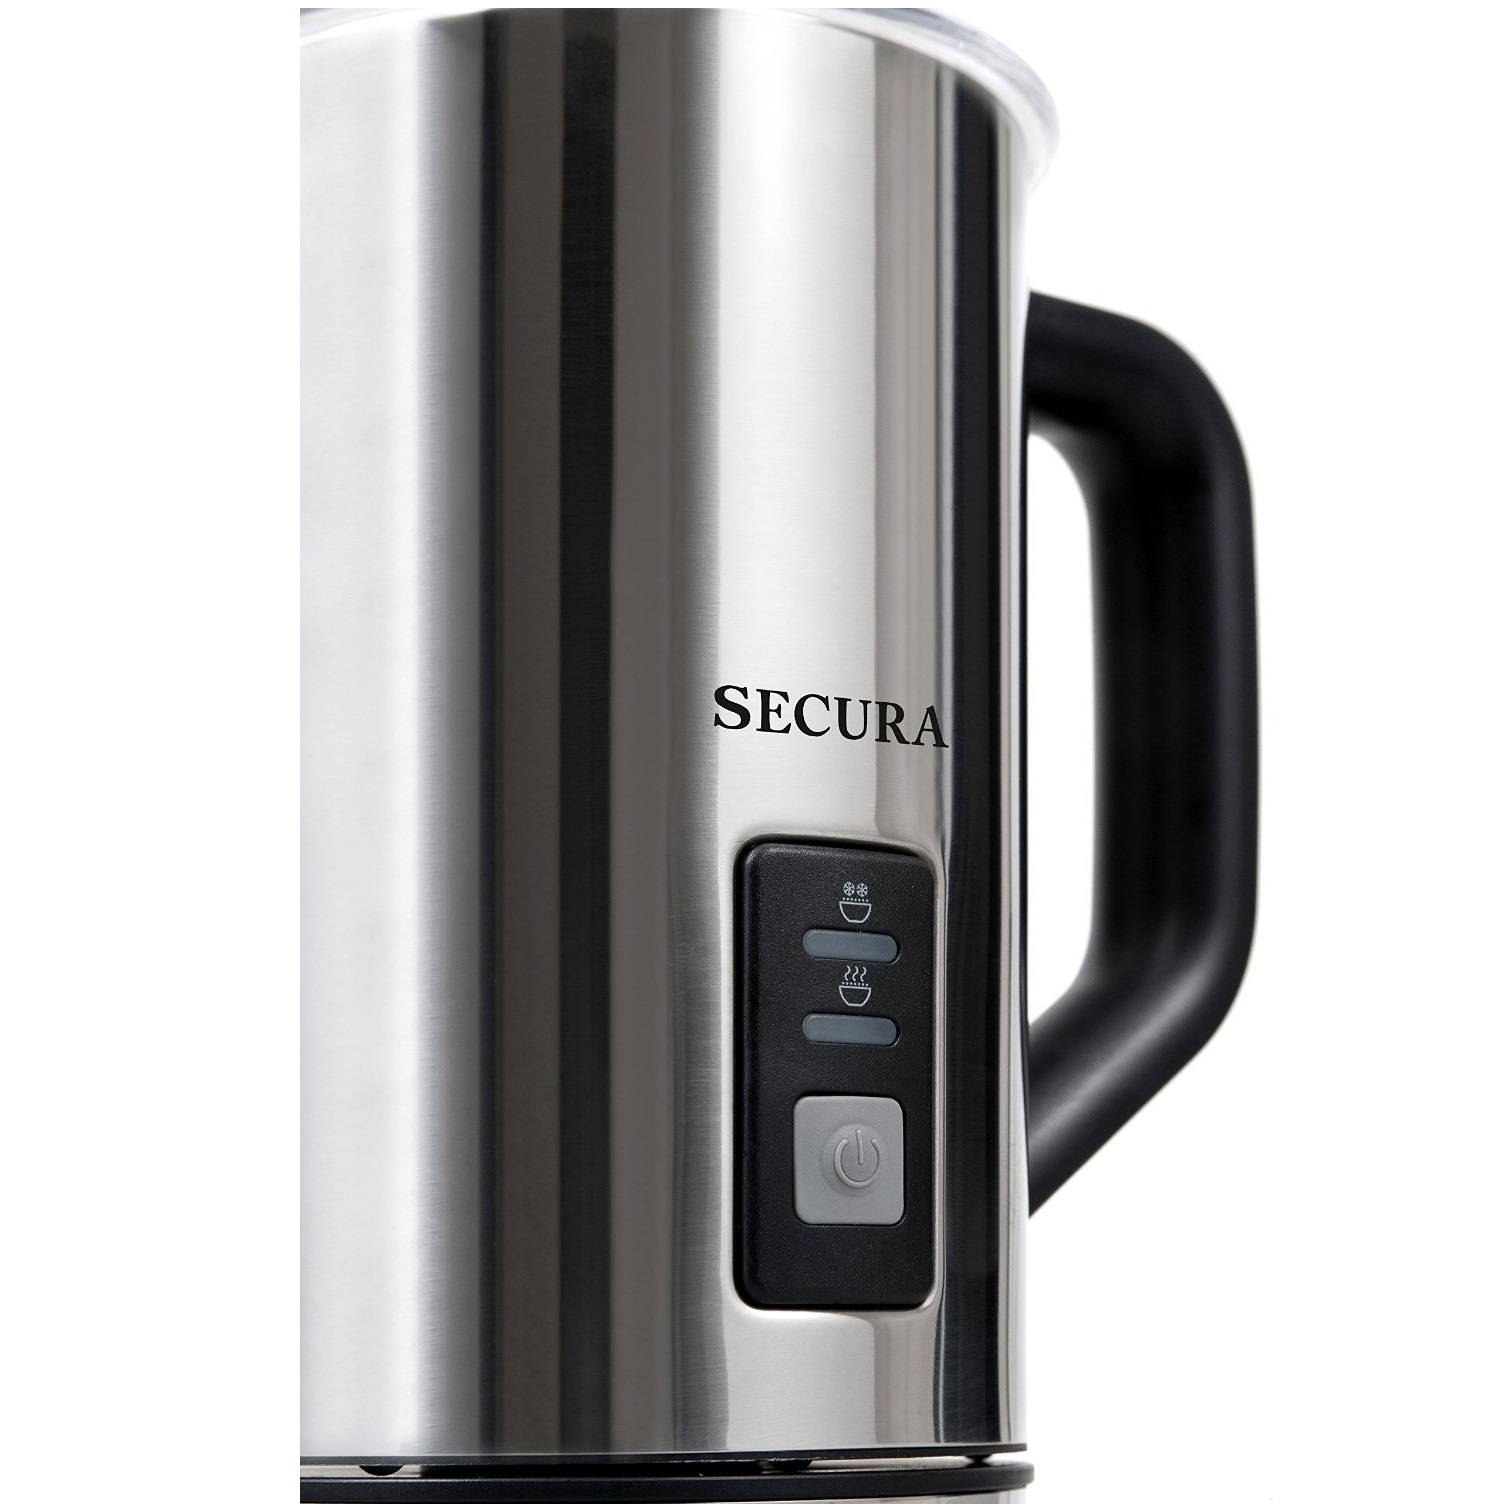 Secura MMF-015 Automatic Electric Milk Frother & Warmer